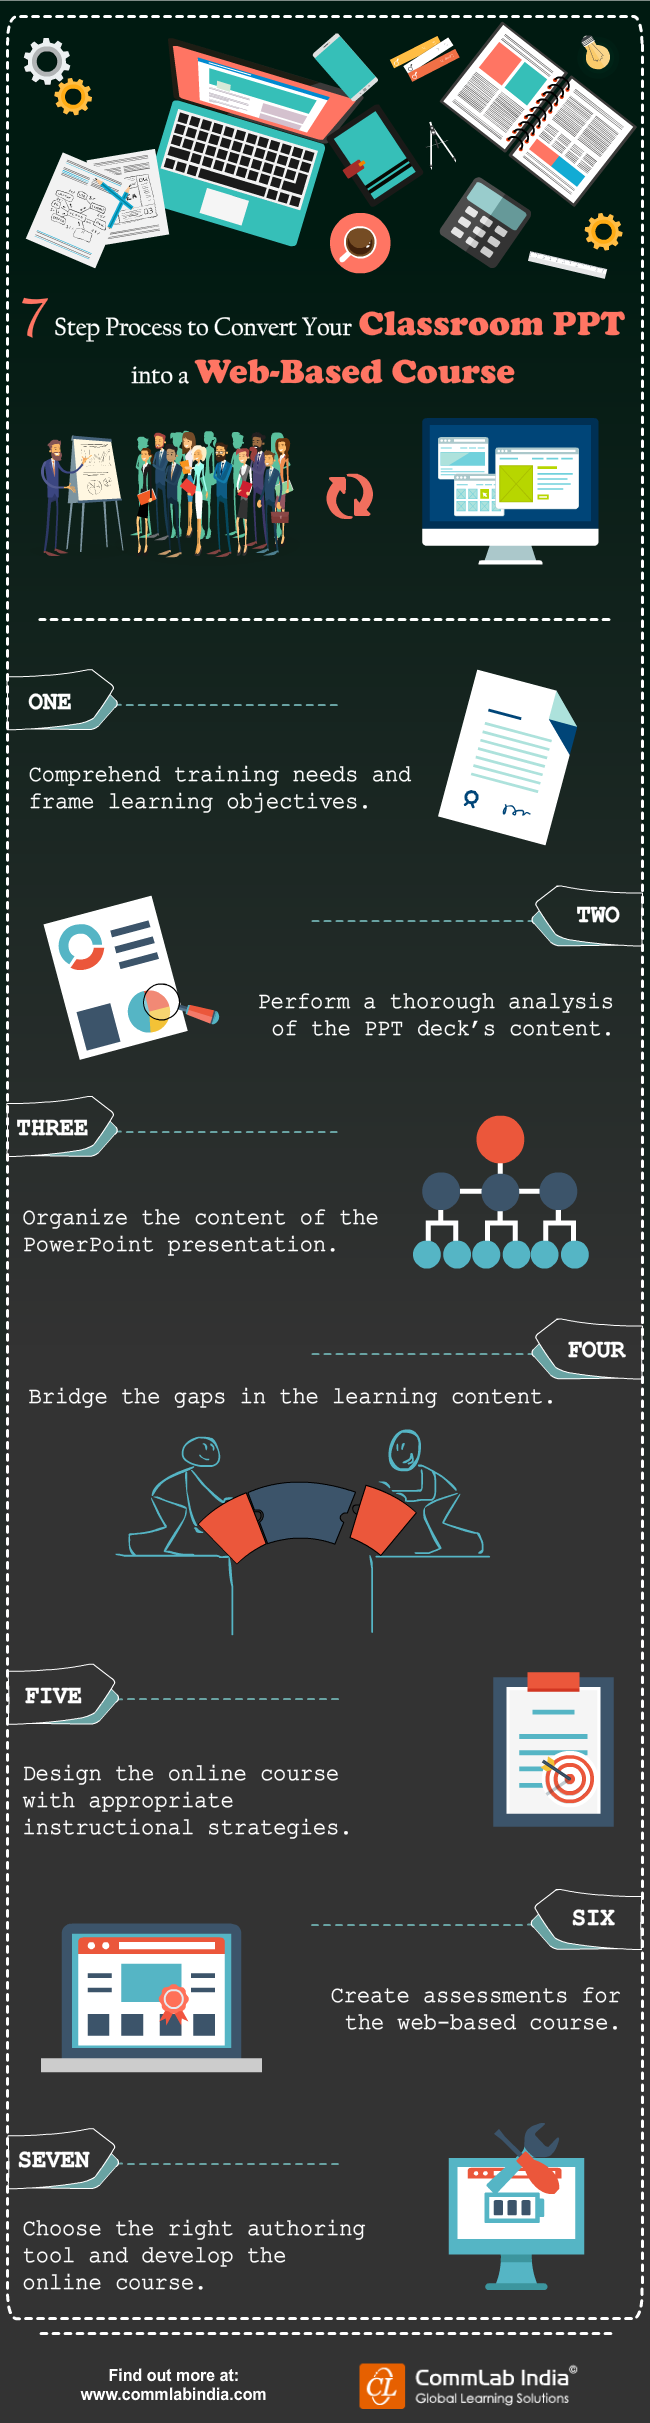 7-Step Process to Convert Your Classroom PPT to a Web-Based Course [Infographic]